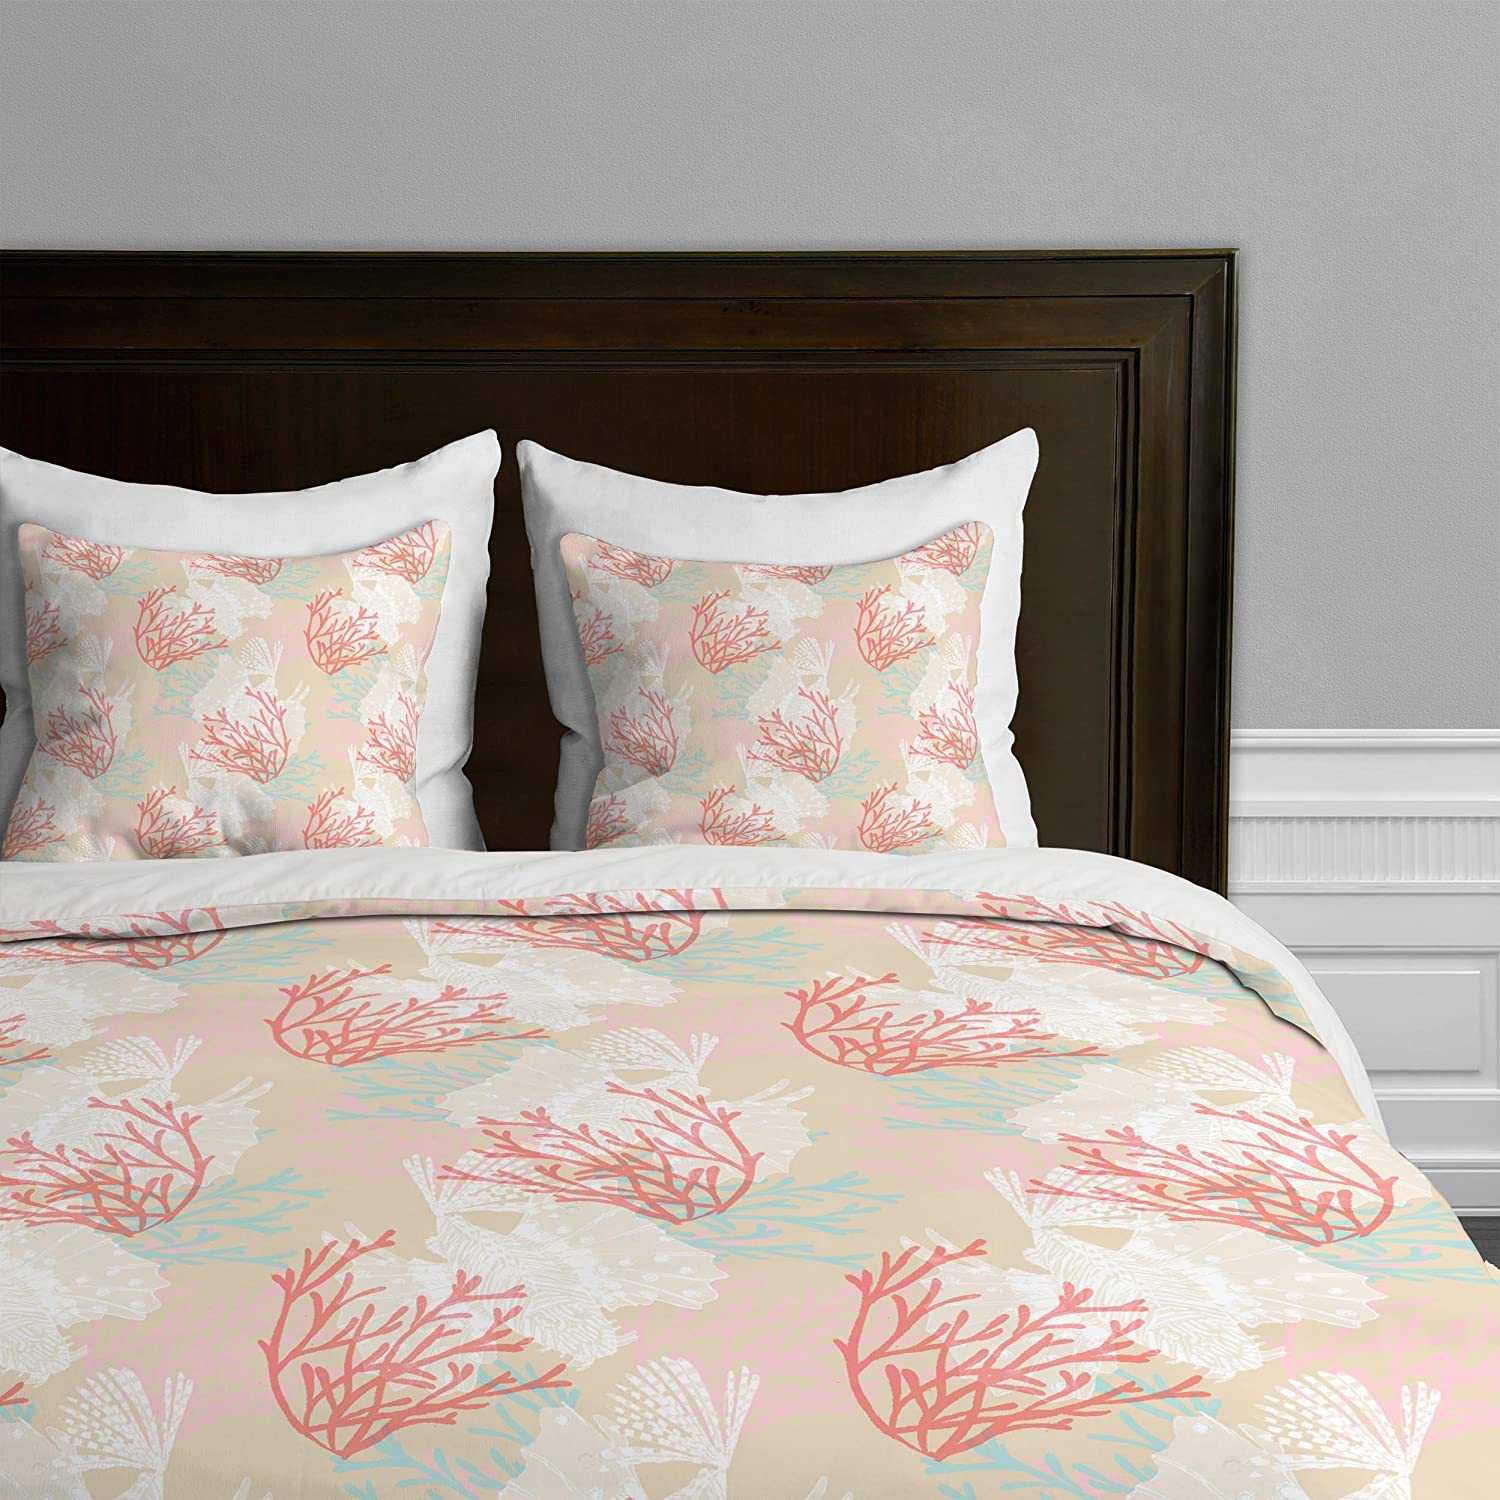 Tiger Fish Pink King Deny Designs  Aimee St Hill Big Leaves bluee Duvet Cover, Queen